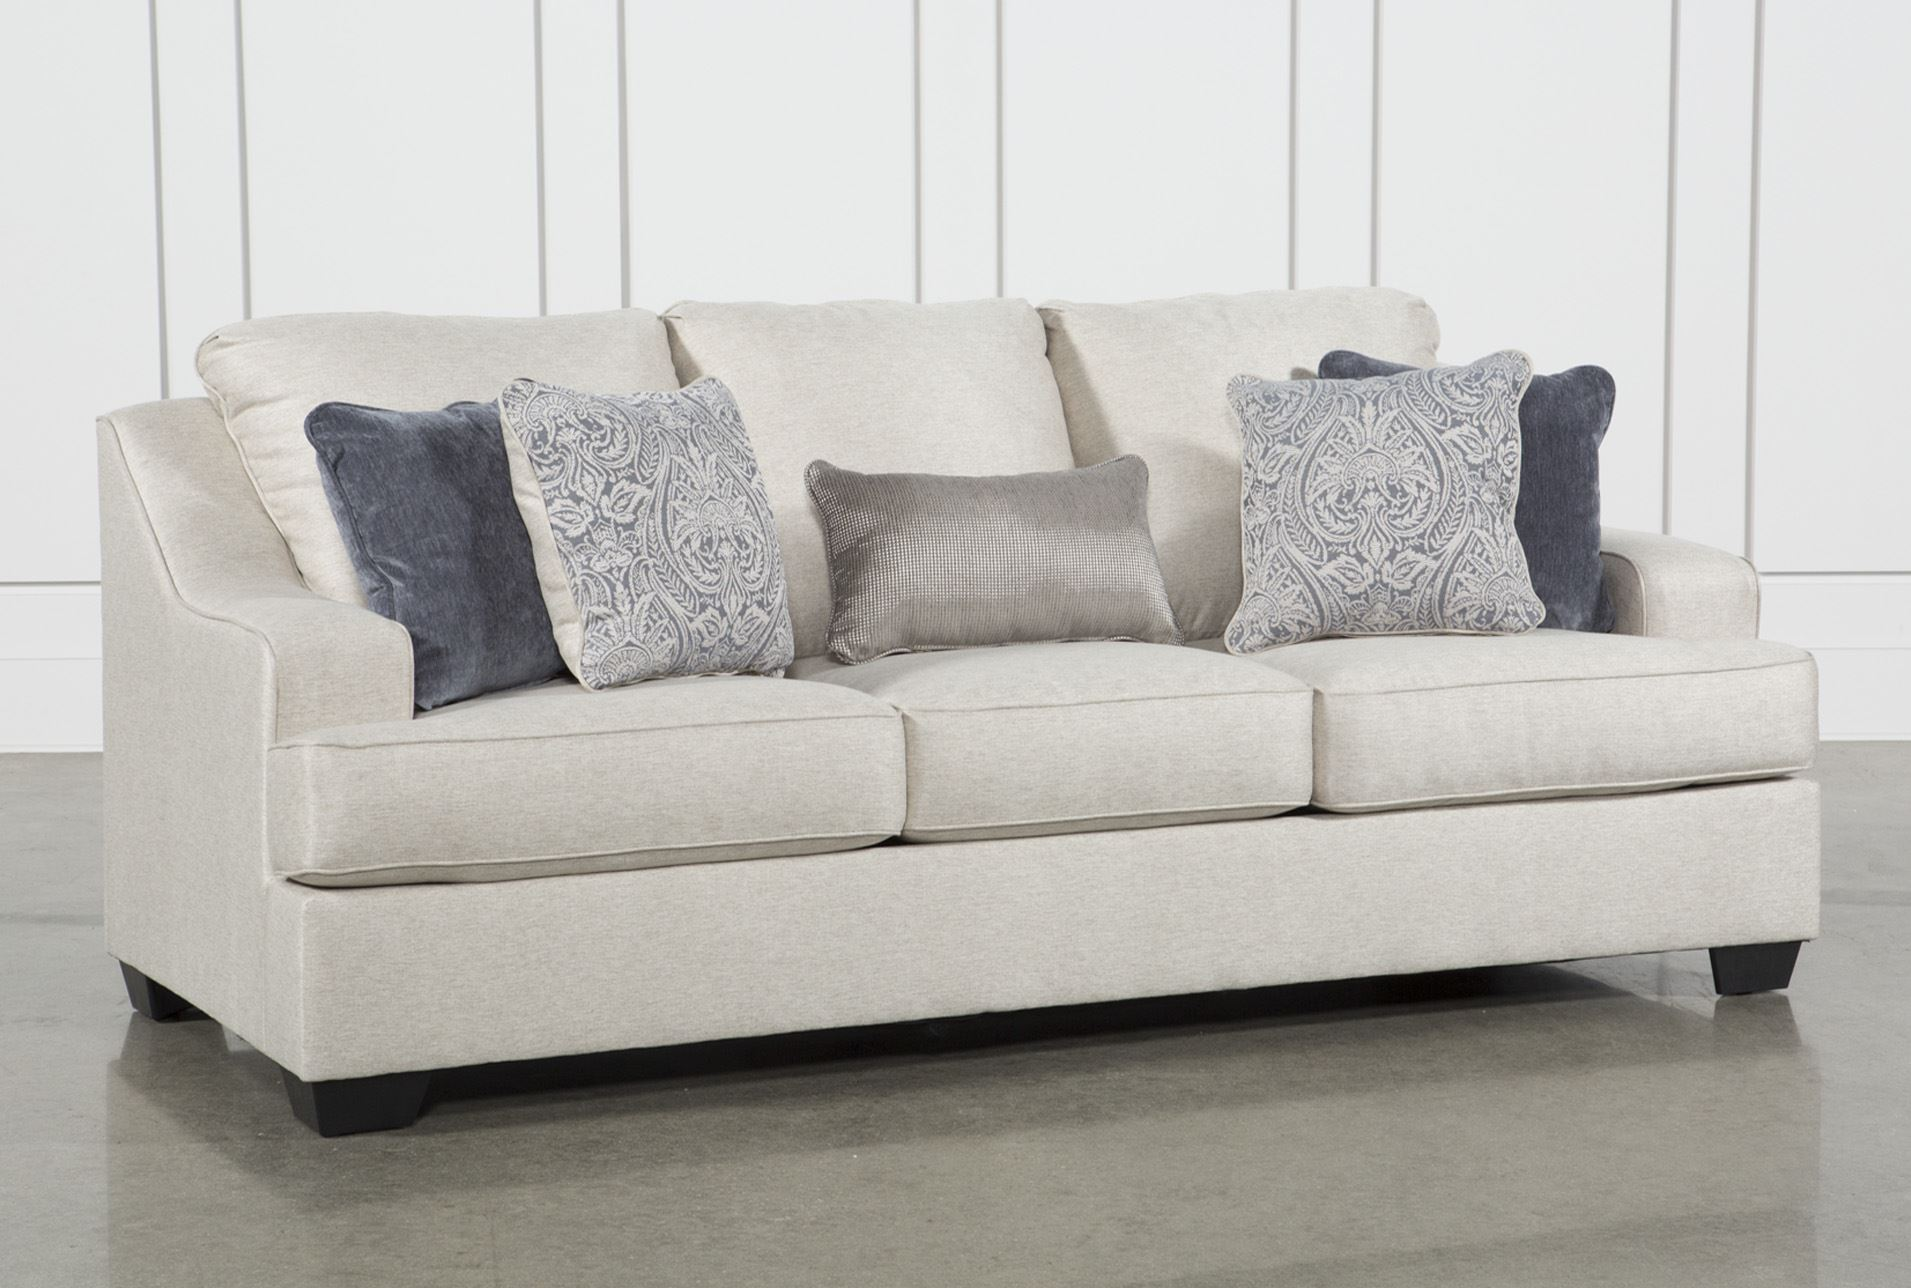 Brumbeck Queen Sofa Sleeper (Qty: 1) has been successfully added to your  Cart.